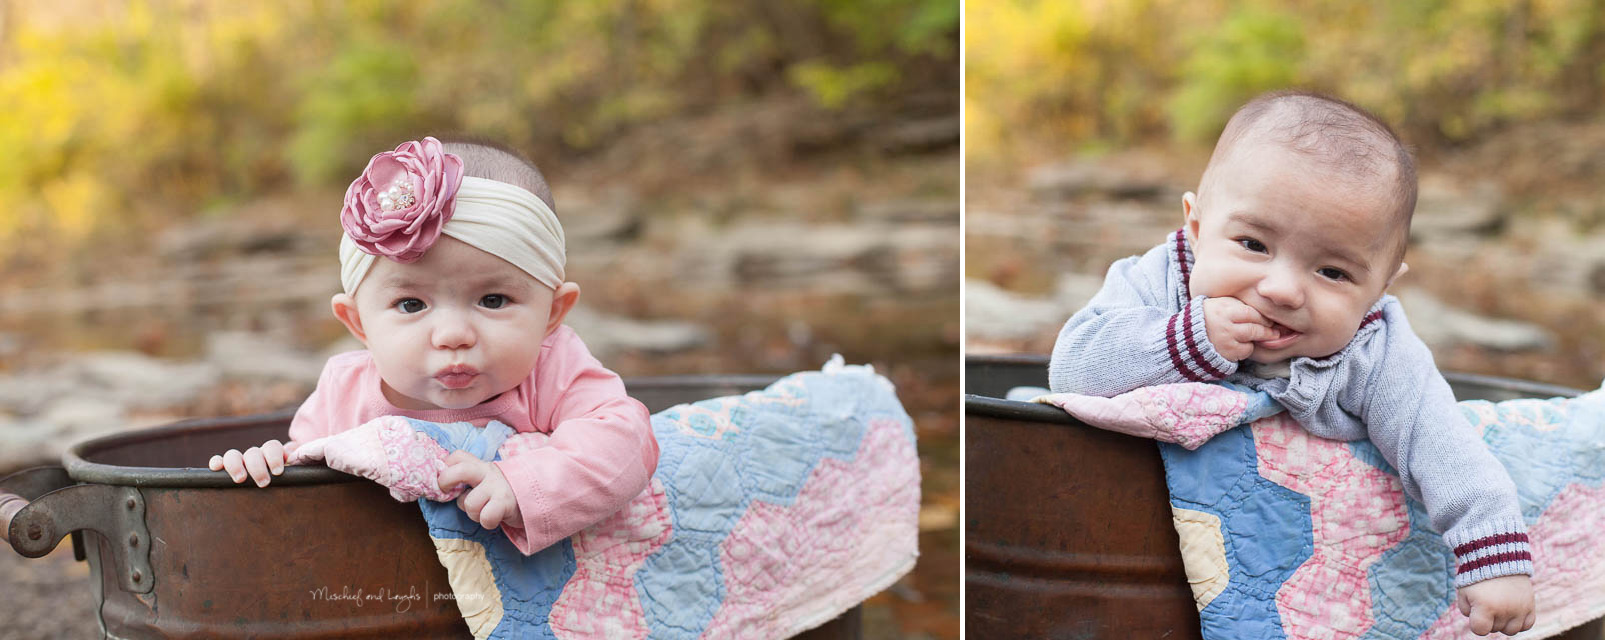 4 month old twins, Canandaigua family photographer, Mischief and Laughs